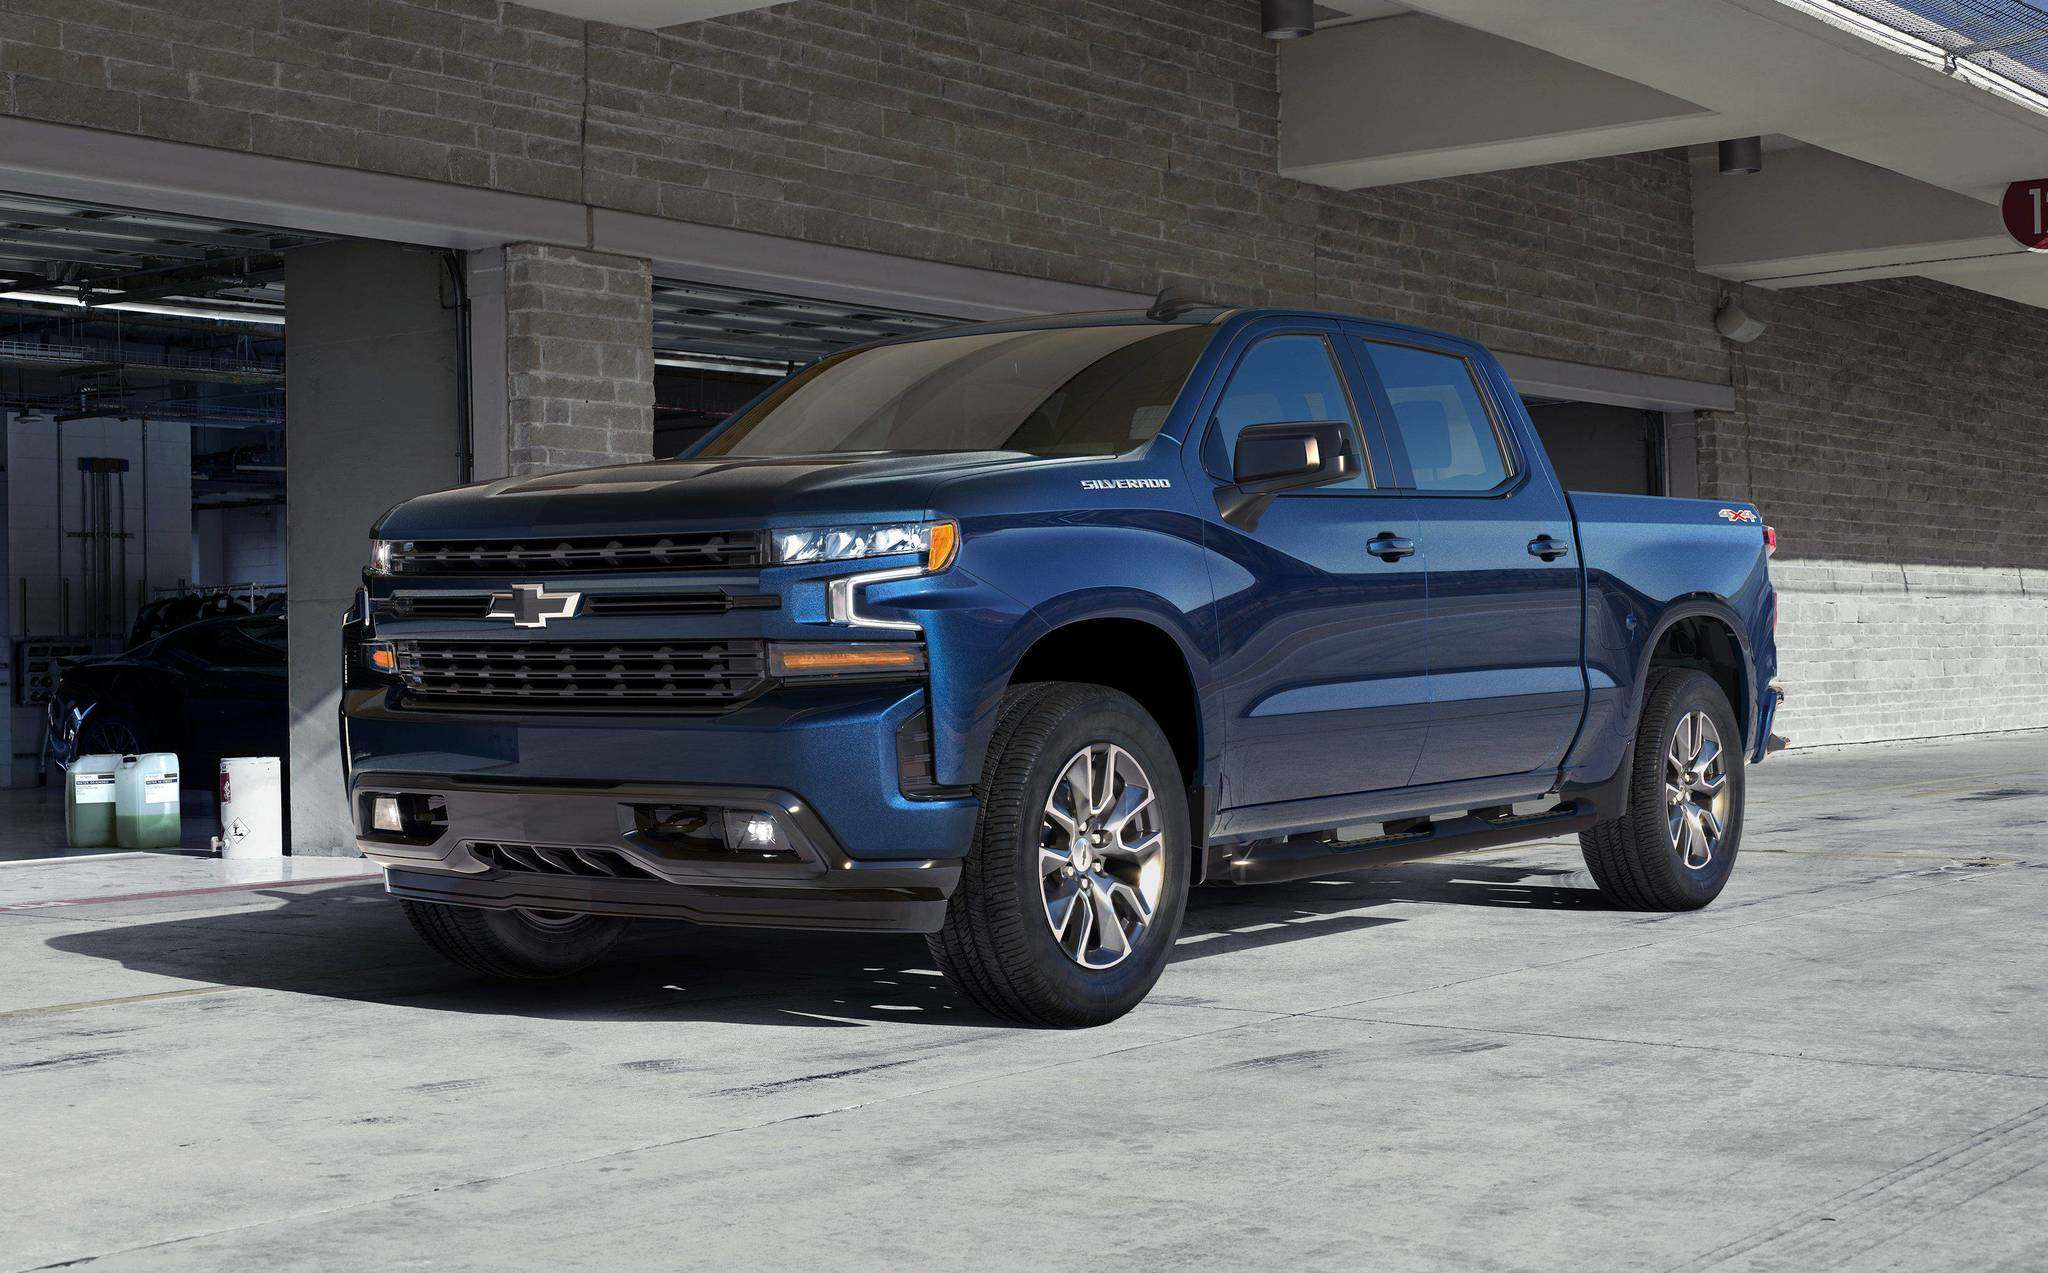 The 2019 Silverado 1500 has been totally redesigned, with rounded wheel wells, a taller front grille and a more aggressive overall appearance. It also weighs 450 pounds less than the 2018 model.